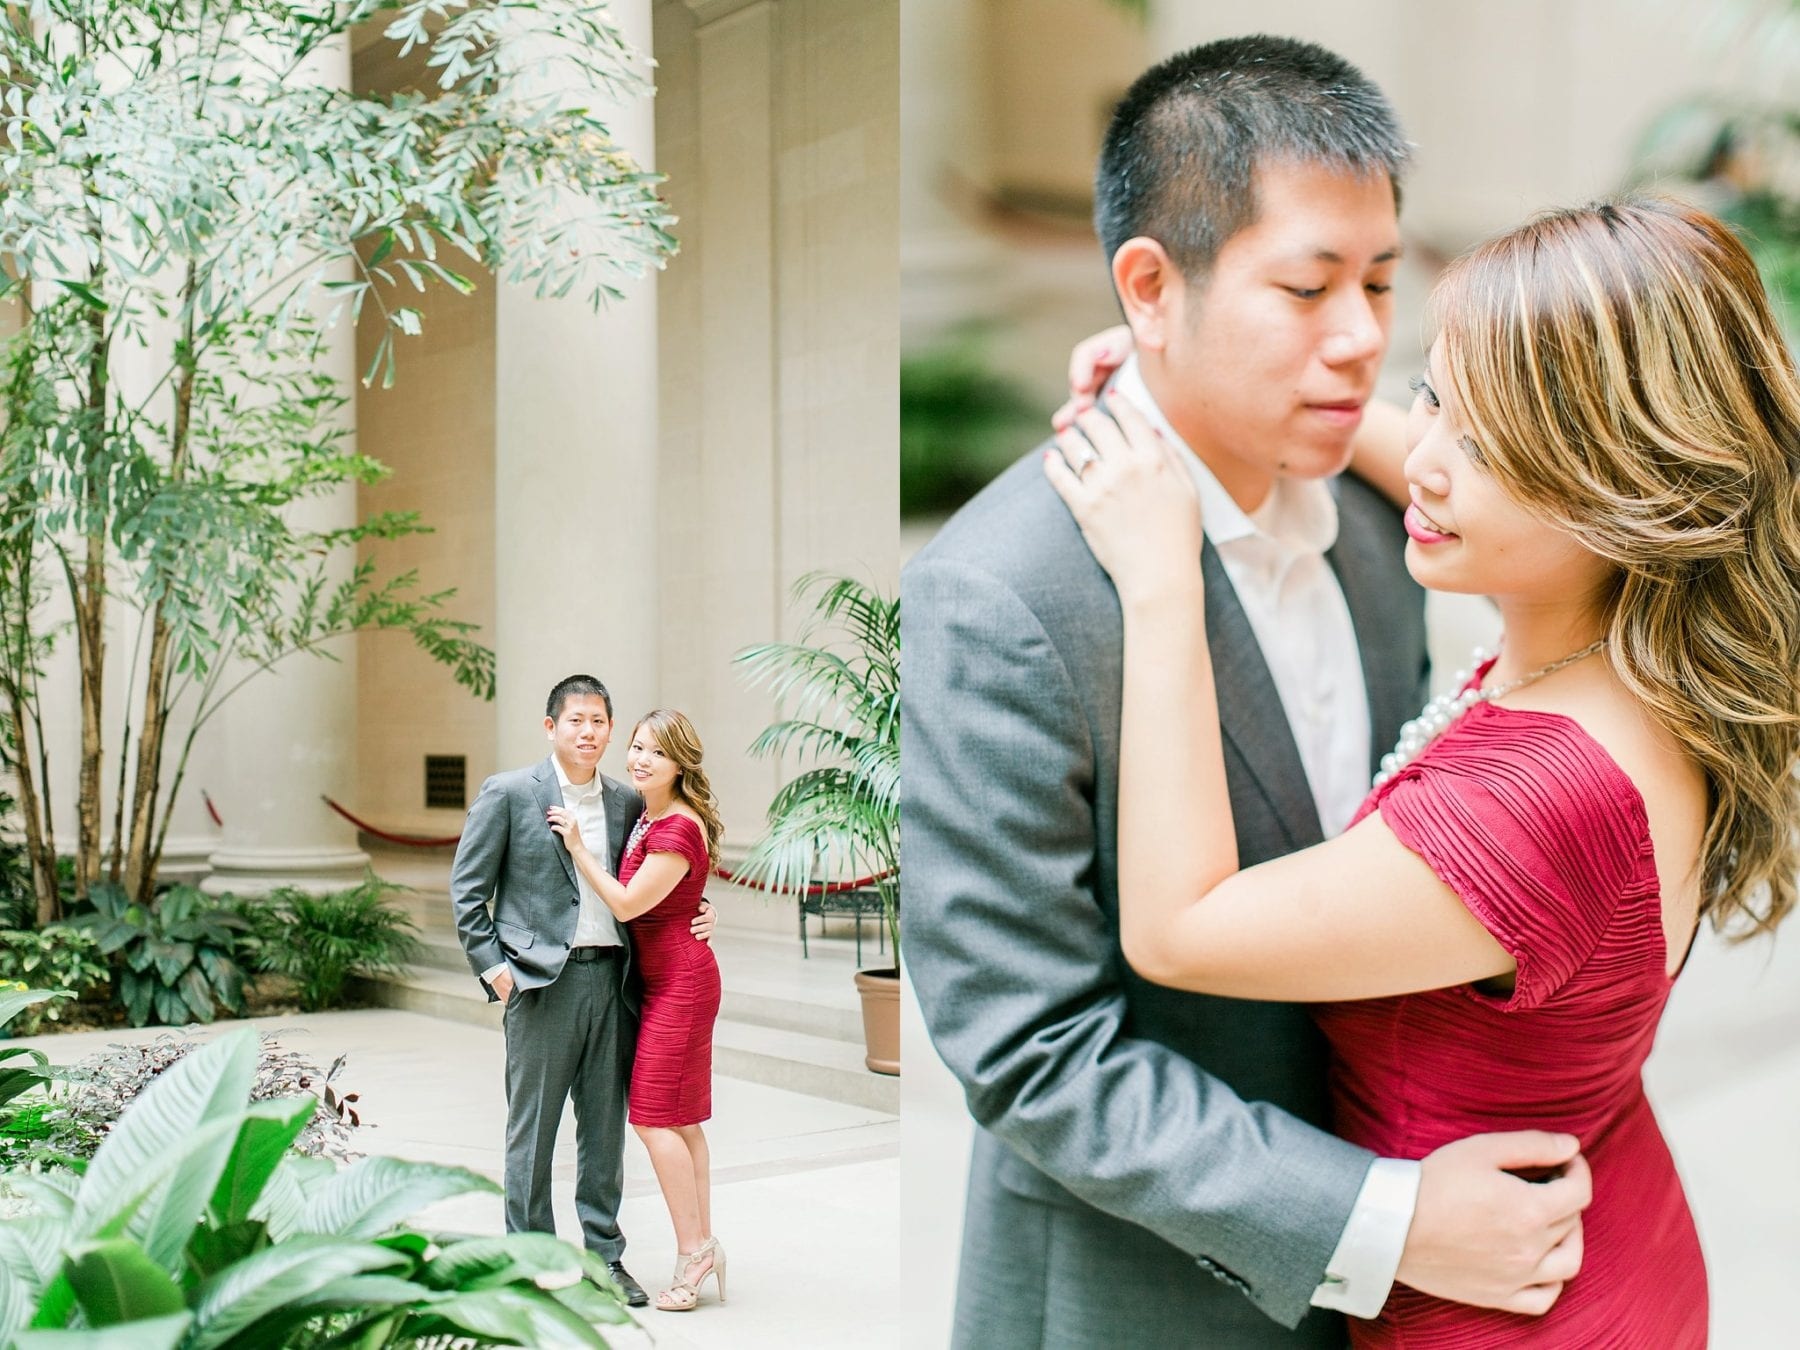 National Gallery of Art Engagement Photos Megan Kelsey Photography Washington DC Wedding Photographer Sy-yu & Anthony-151.jpg